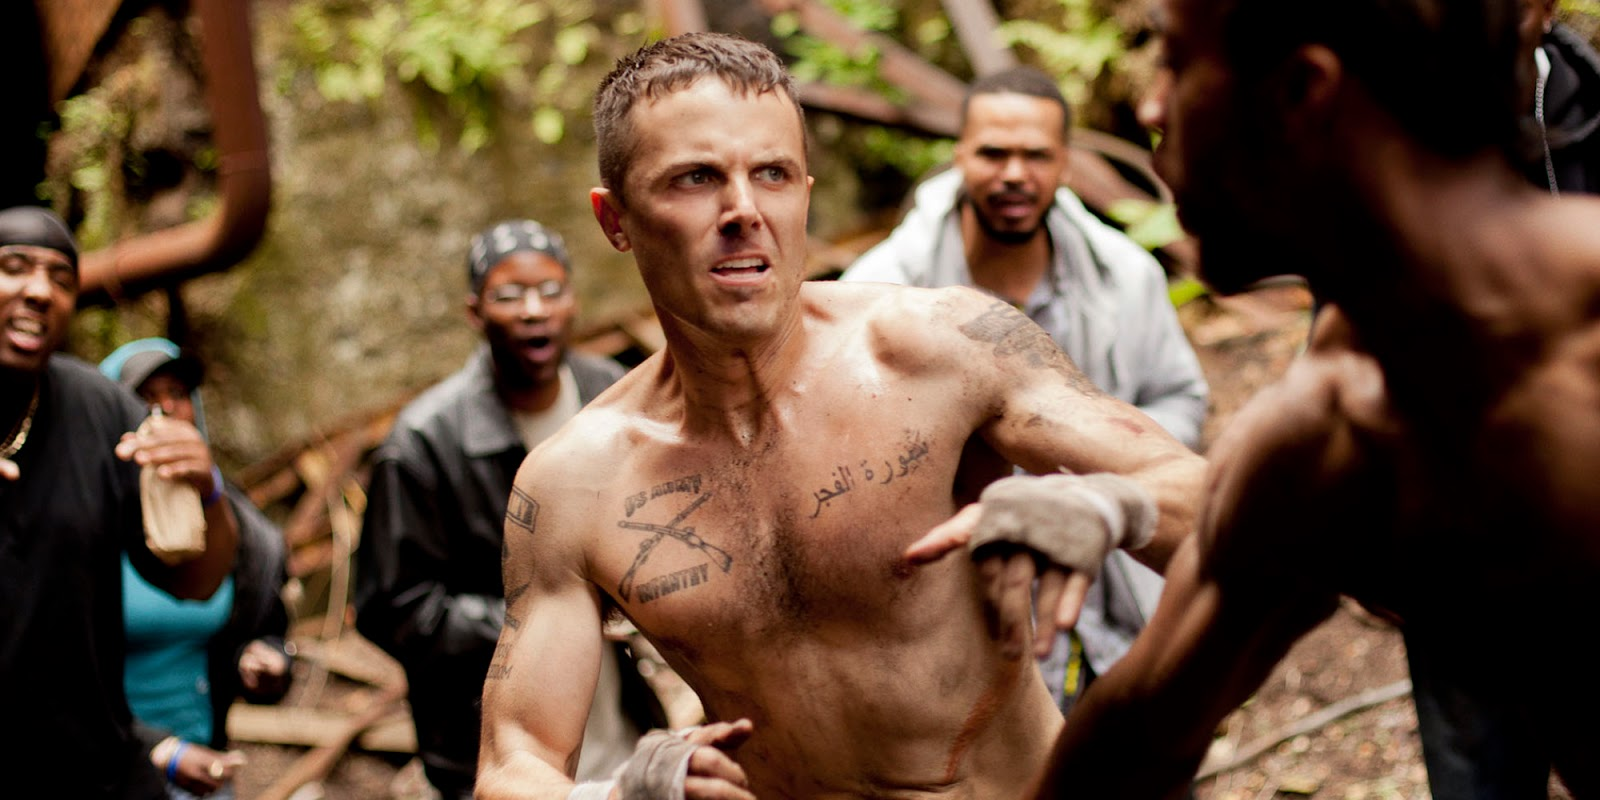 Review: Out of the Furnace | Culture Fix